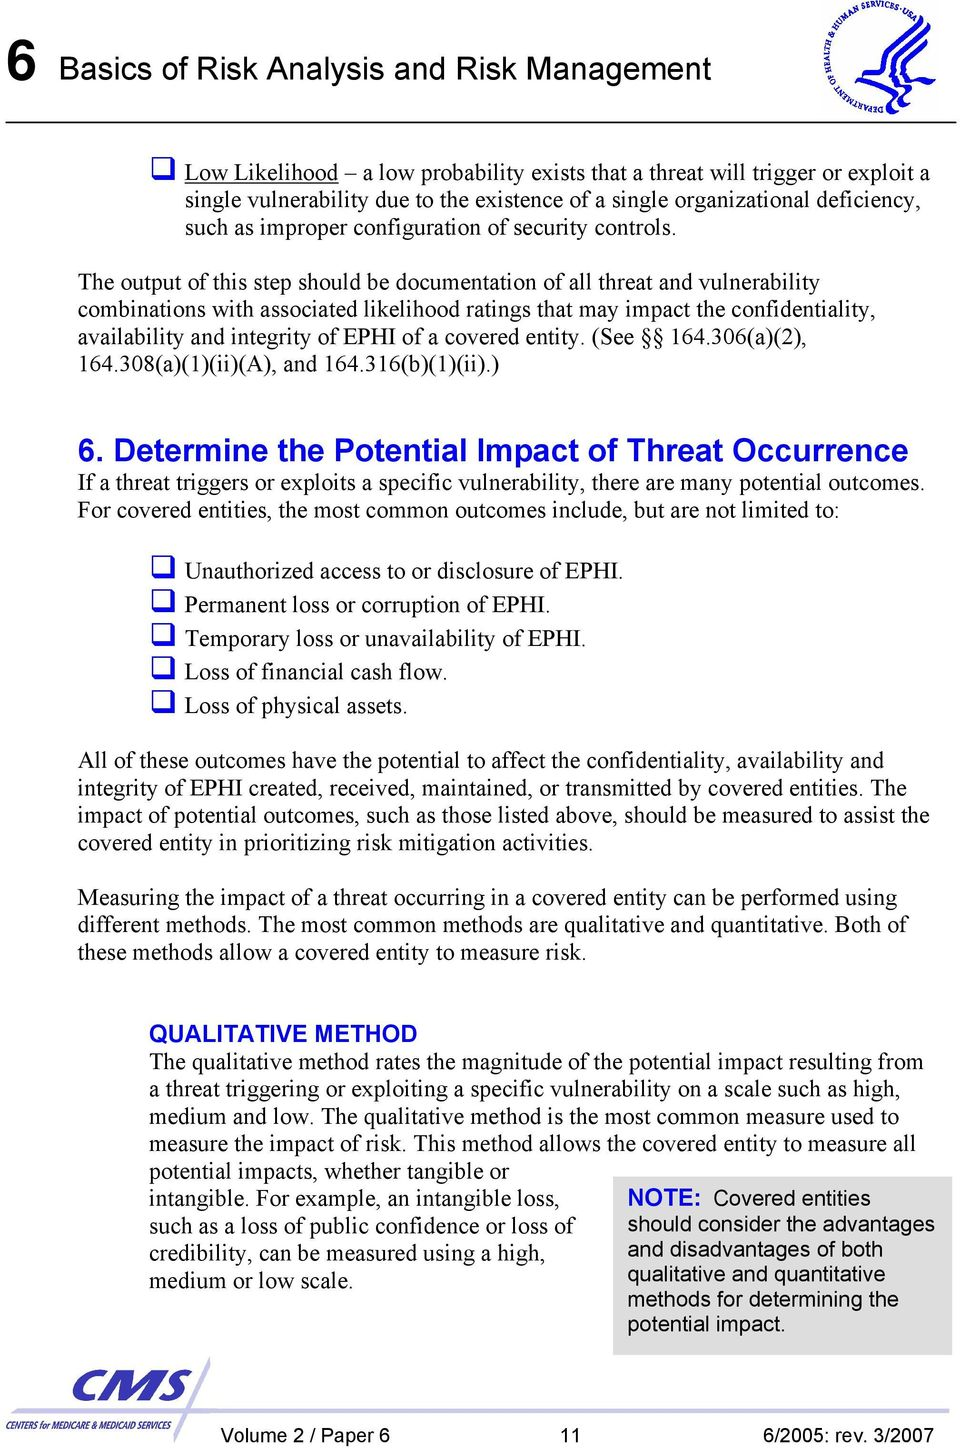 The output of this step should be documentation of all threat and vulnerability combinations with associated likelihood ratings that may impact the confidentiality, availability and integrity of EPHI